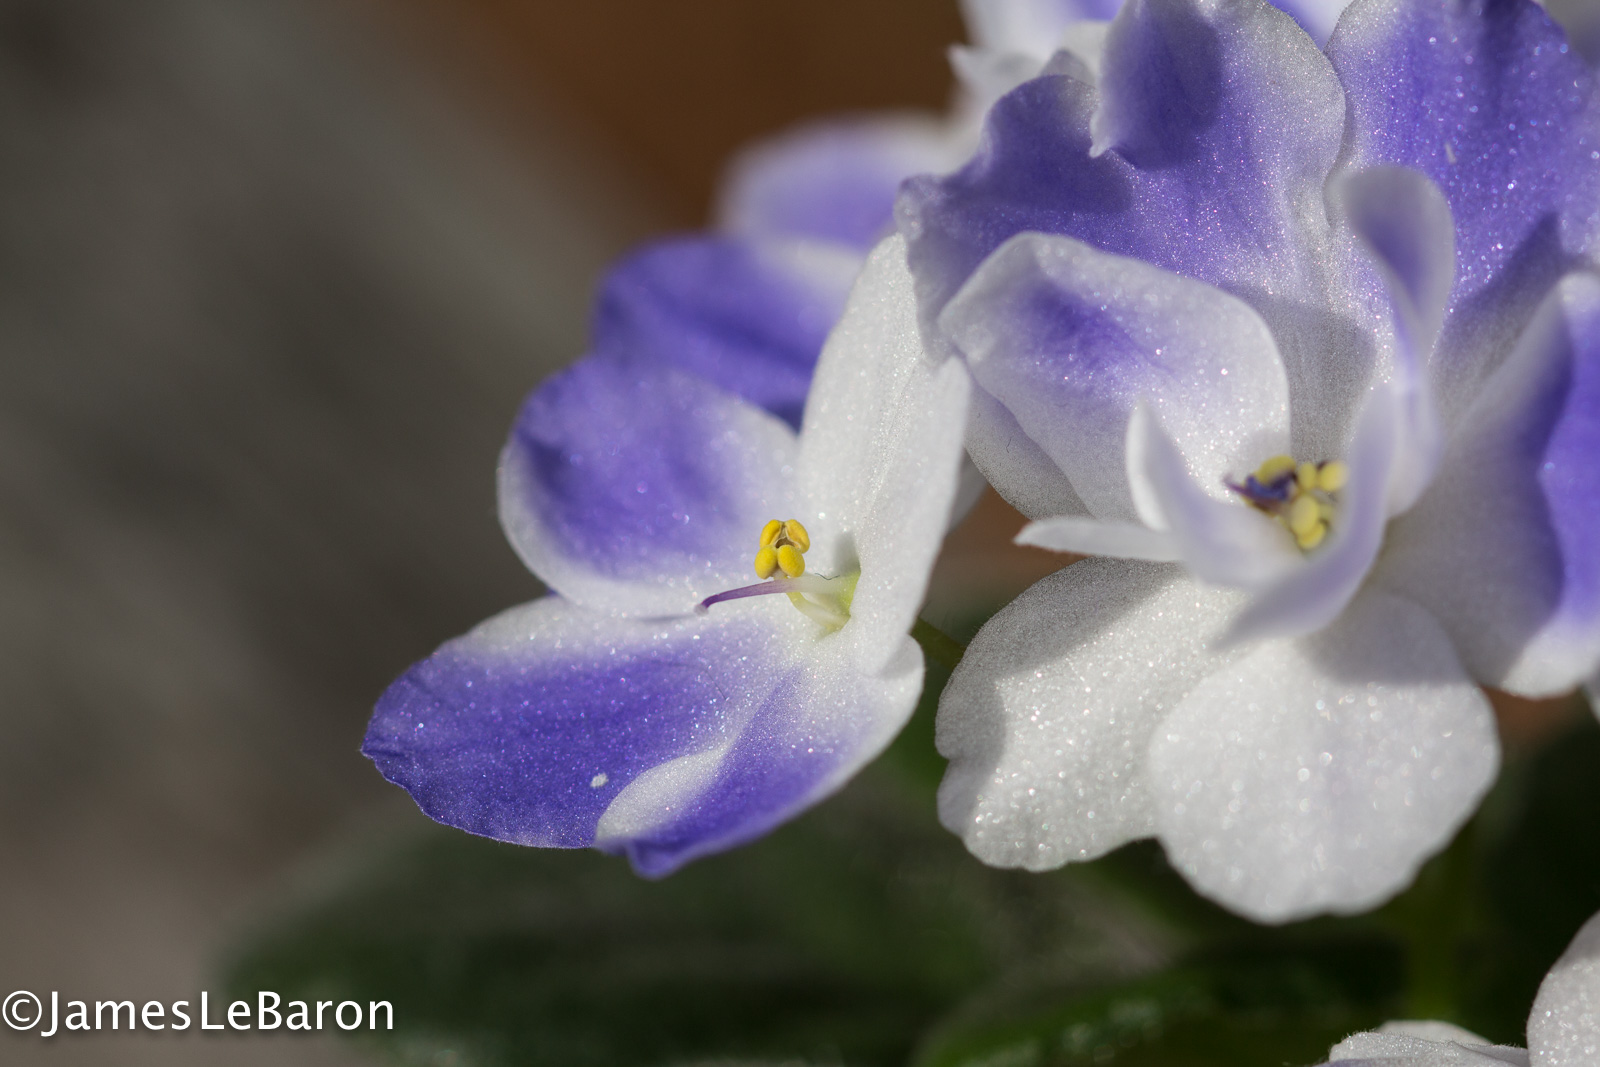 127/365: New colors on the African violet